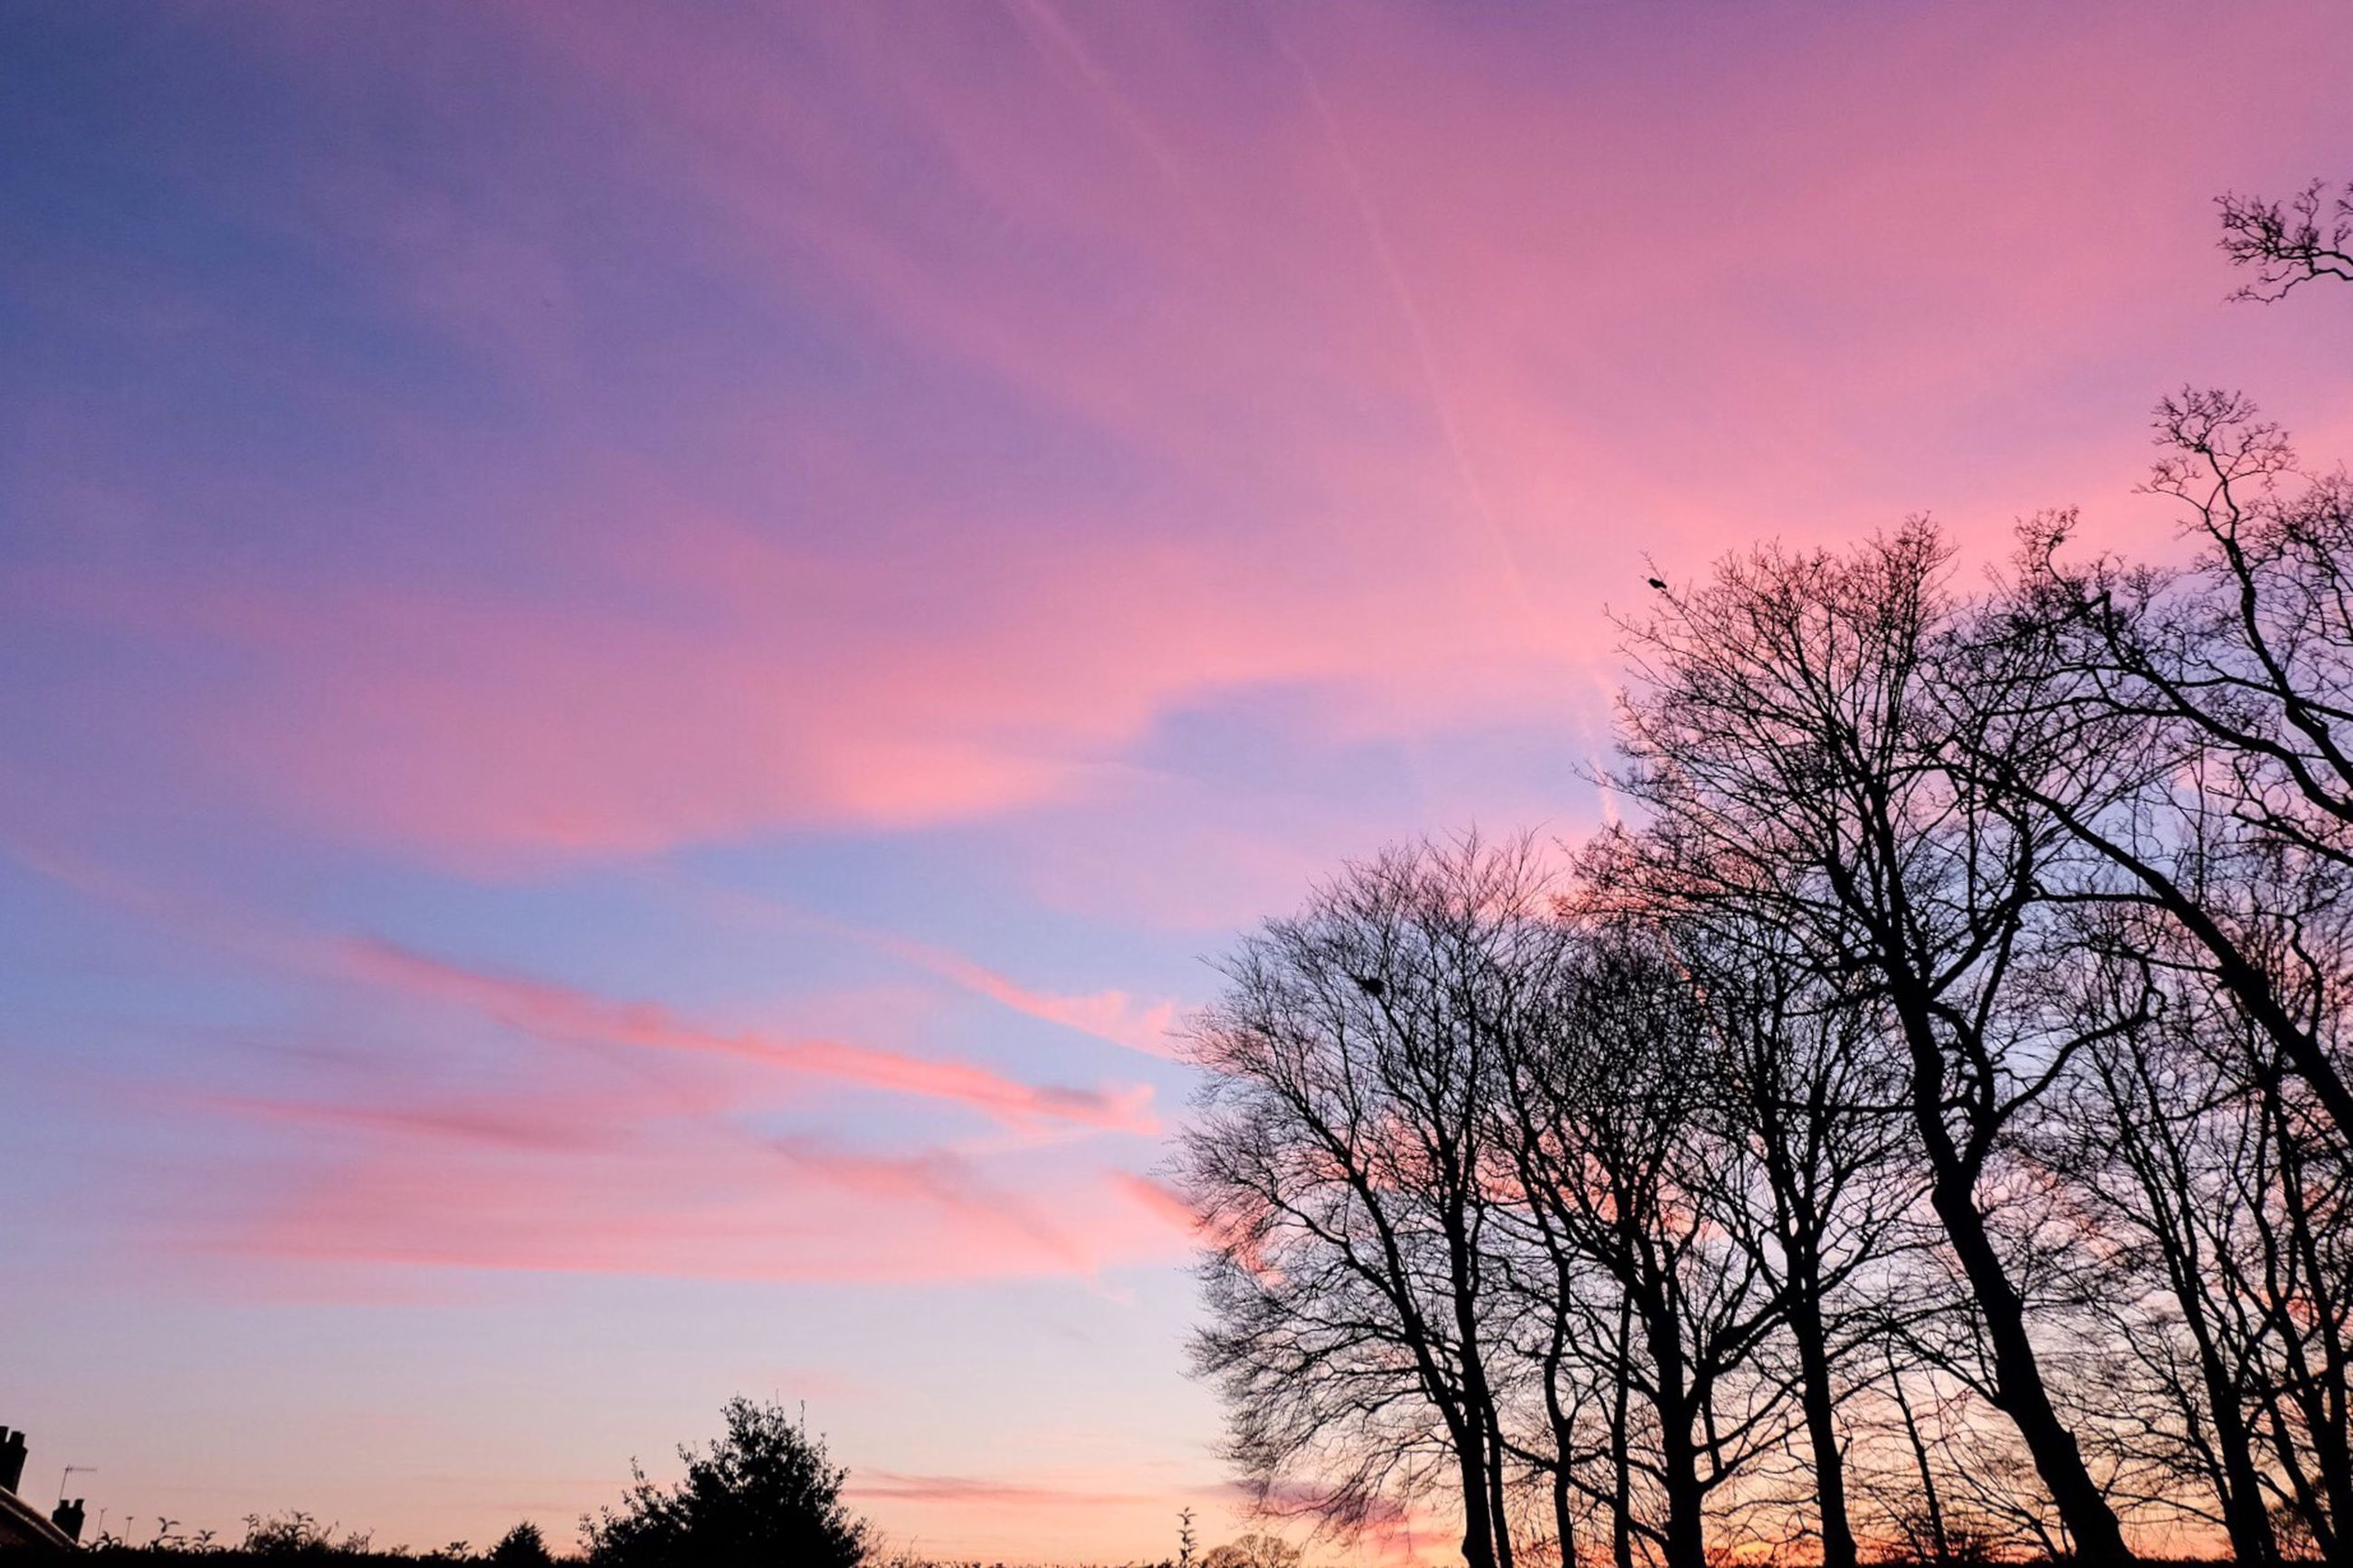 sunset, silhouette, tree, sky, tranquility, scenics, beauty in nature, tranquil scene, orange color, low angle view, nature, bare tree, cloud - sky, branch, idyllic, cloud, dramatic sky, outdoors, no people, dusk